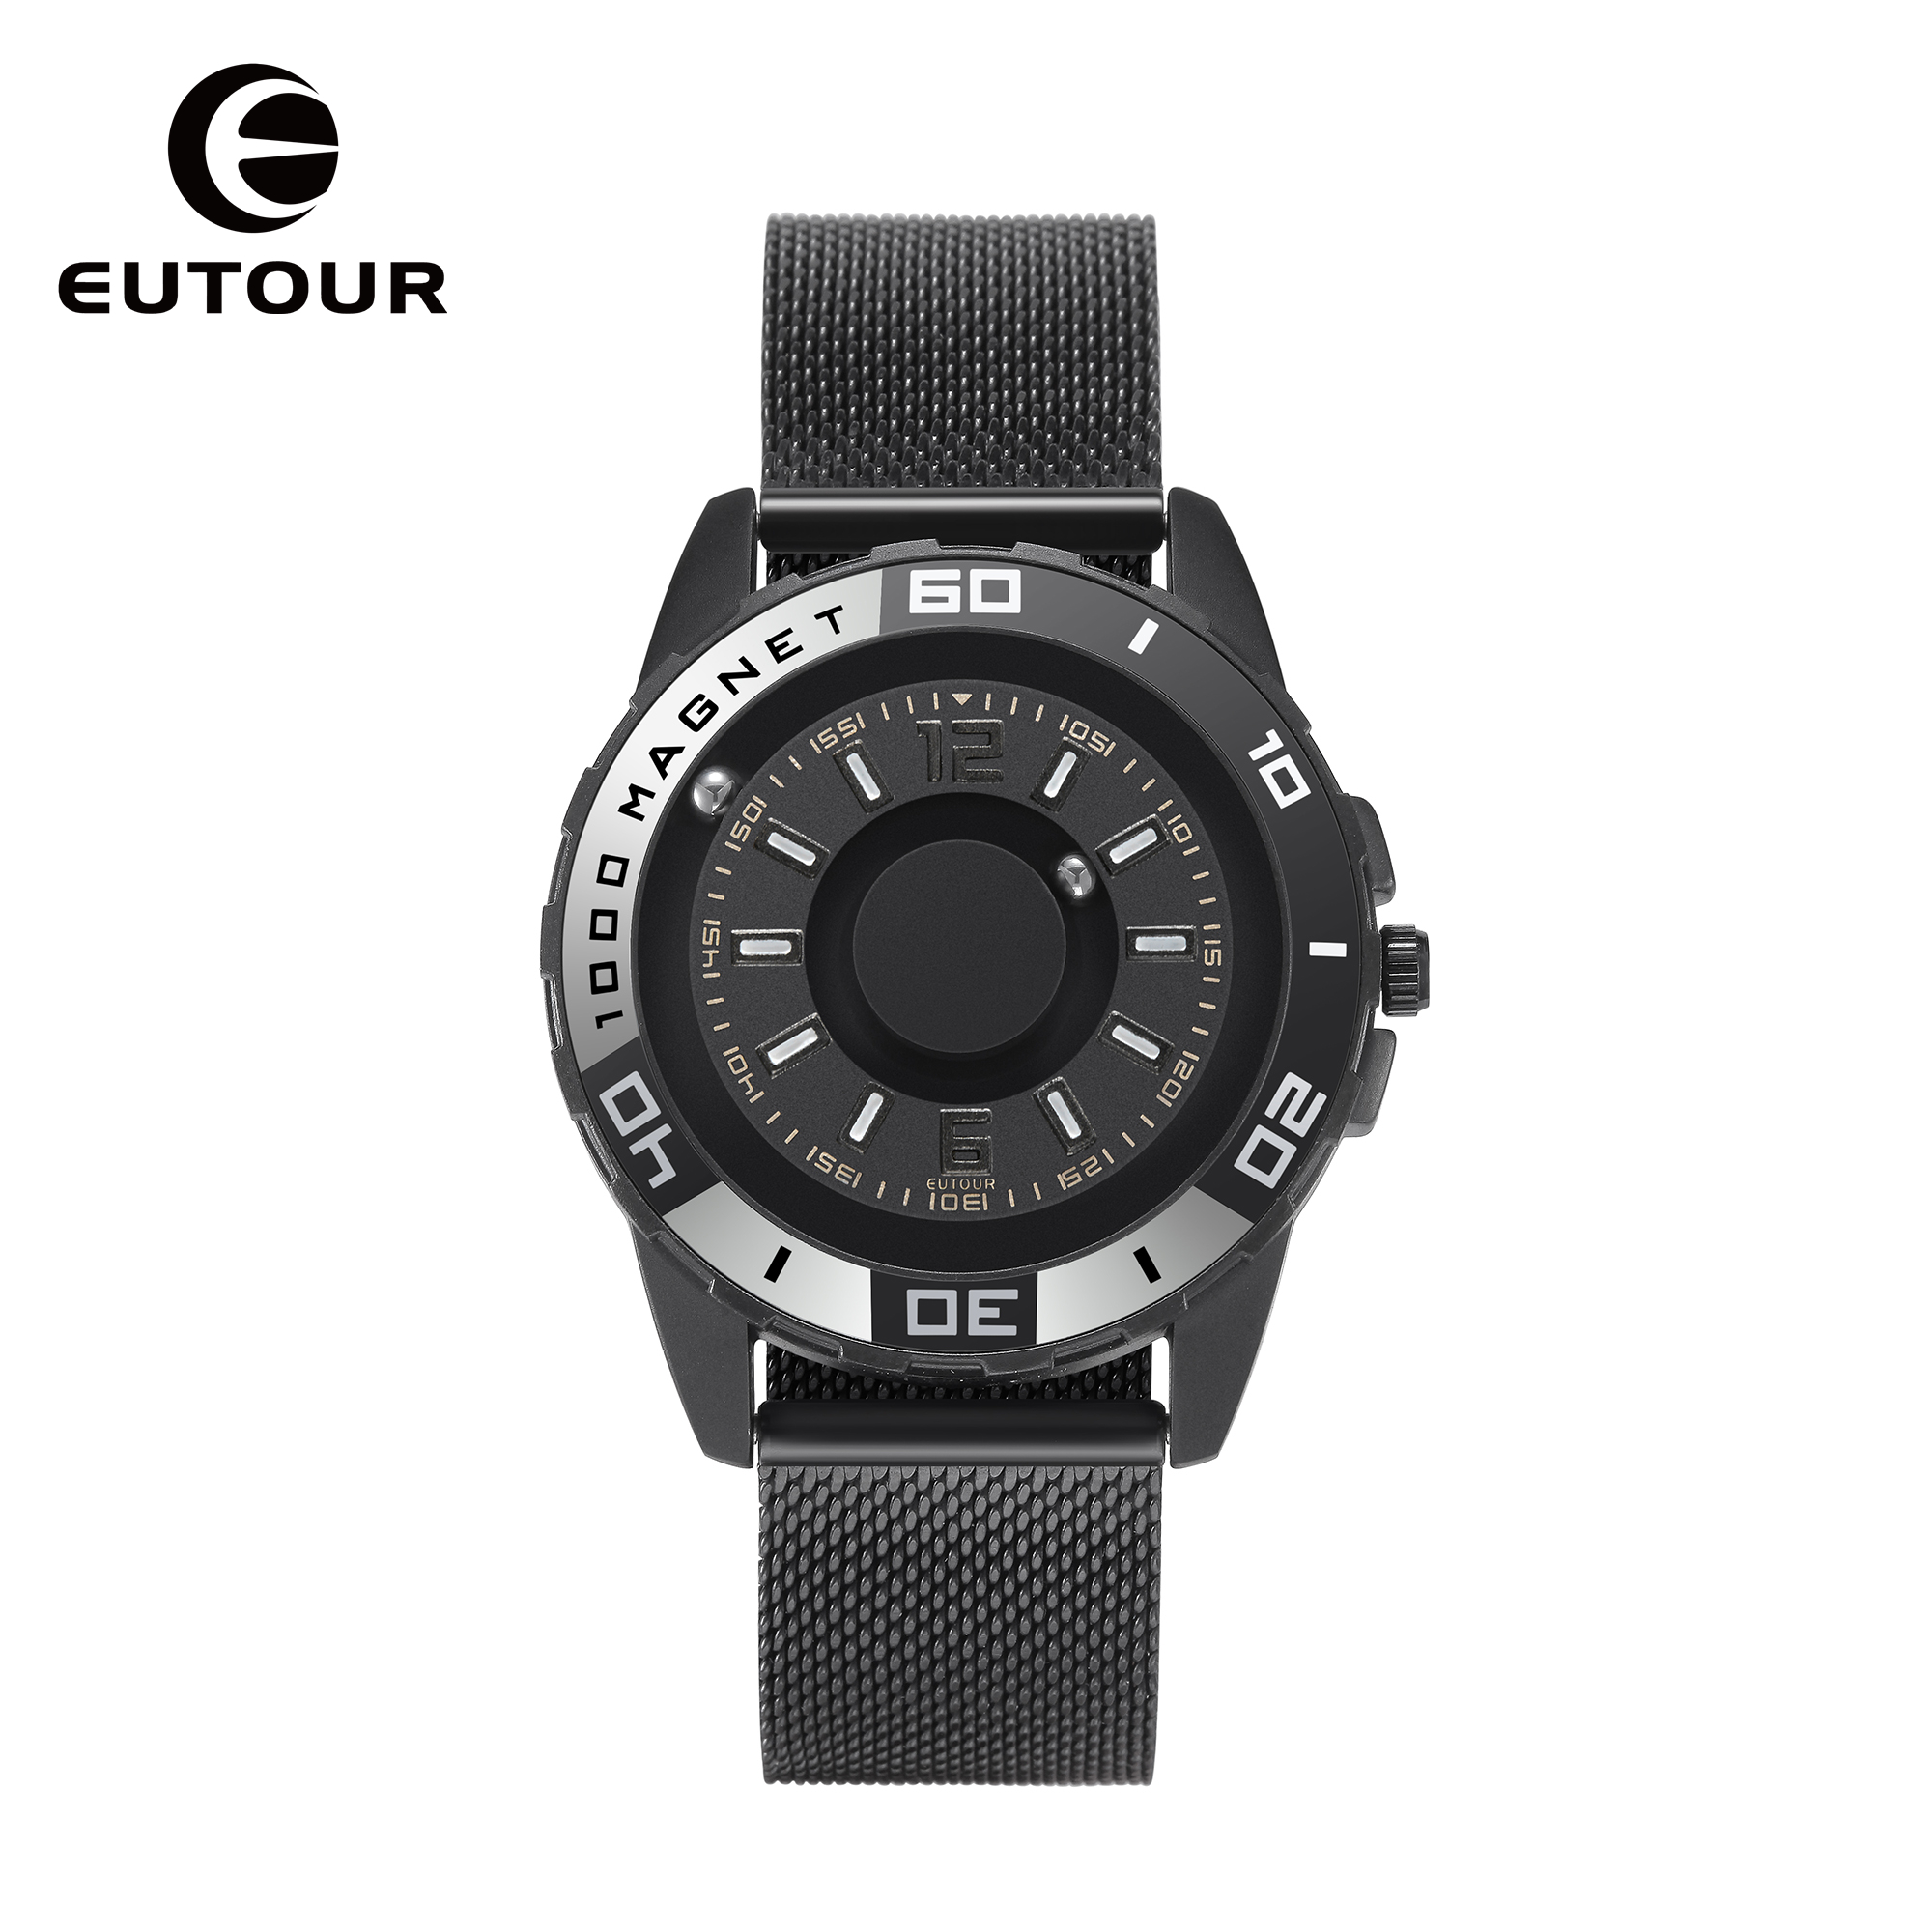 EUTOUR  Quartz Watch Men's Luxury Sports Design Shell Original Magnetic Watch Fashion Simple Watch Belt Men's Watch Gift